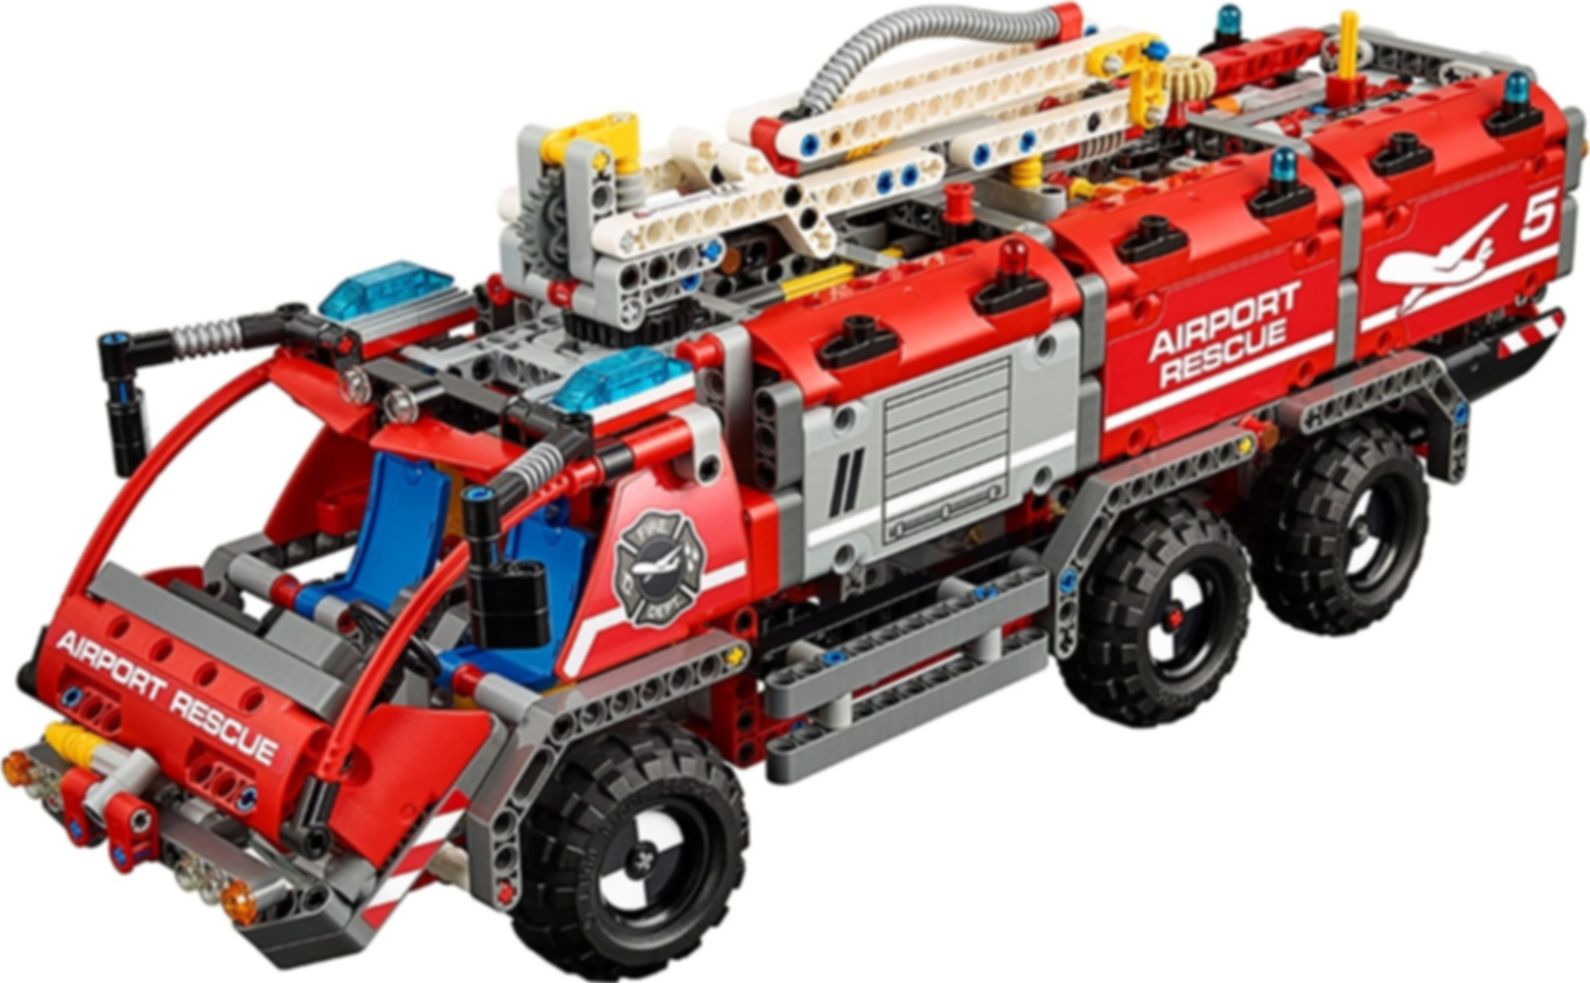 LEGO® Technic Airport Rescue Vehicle components